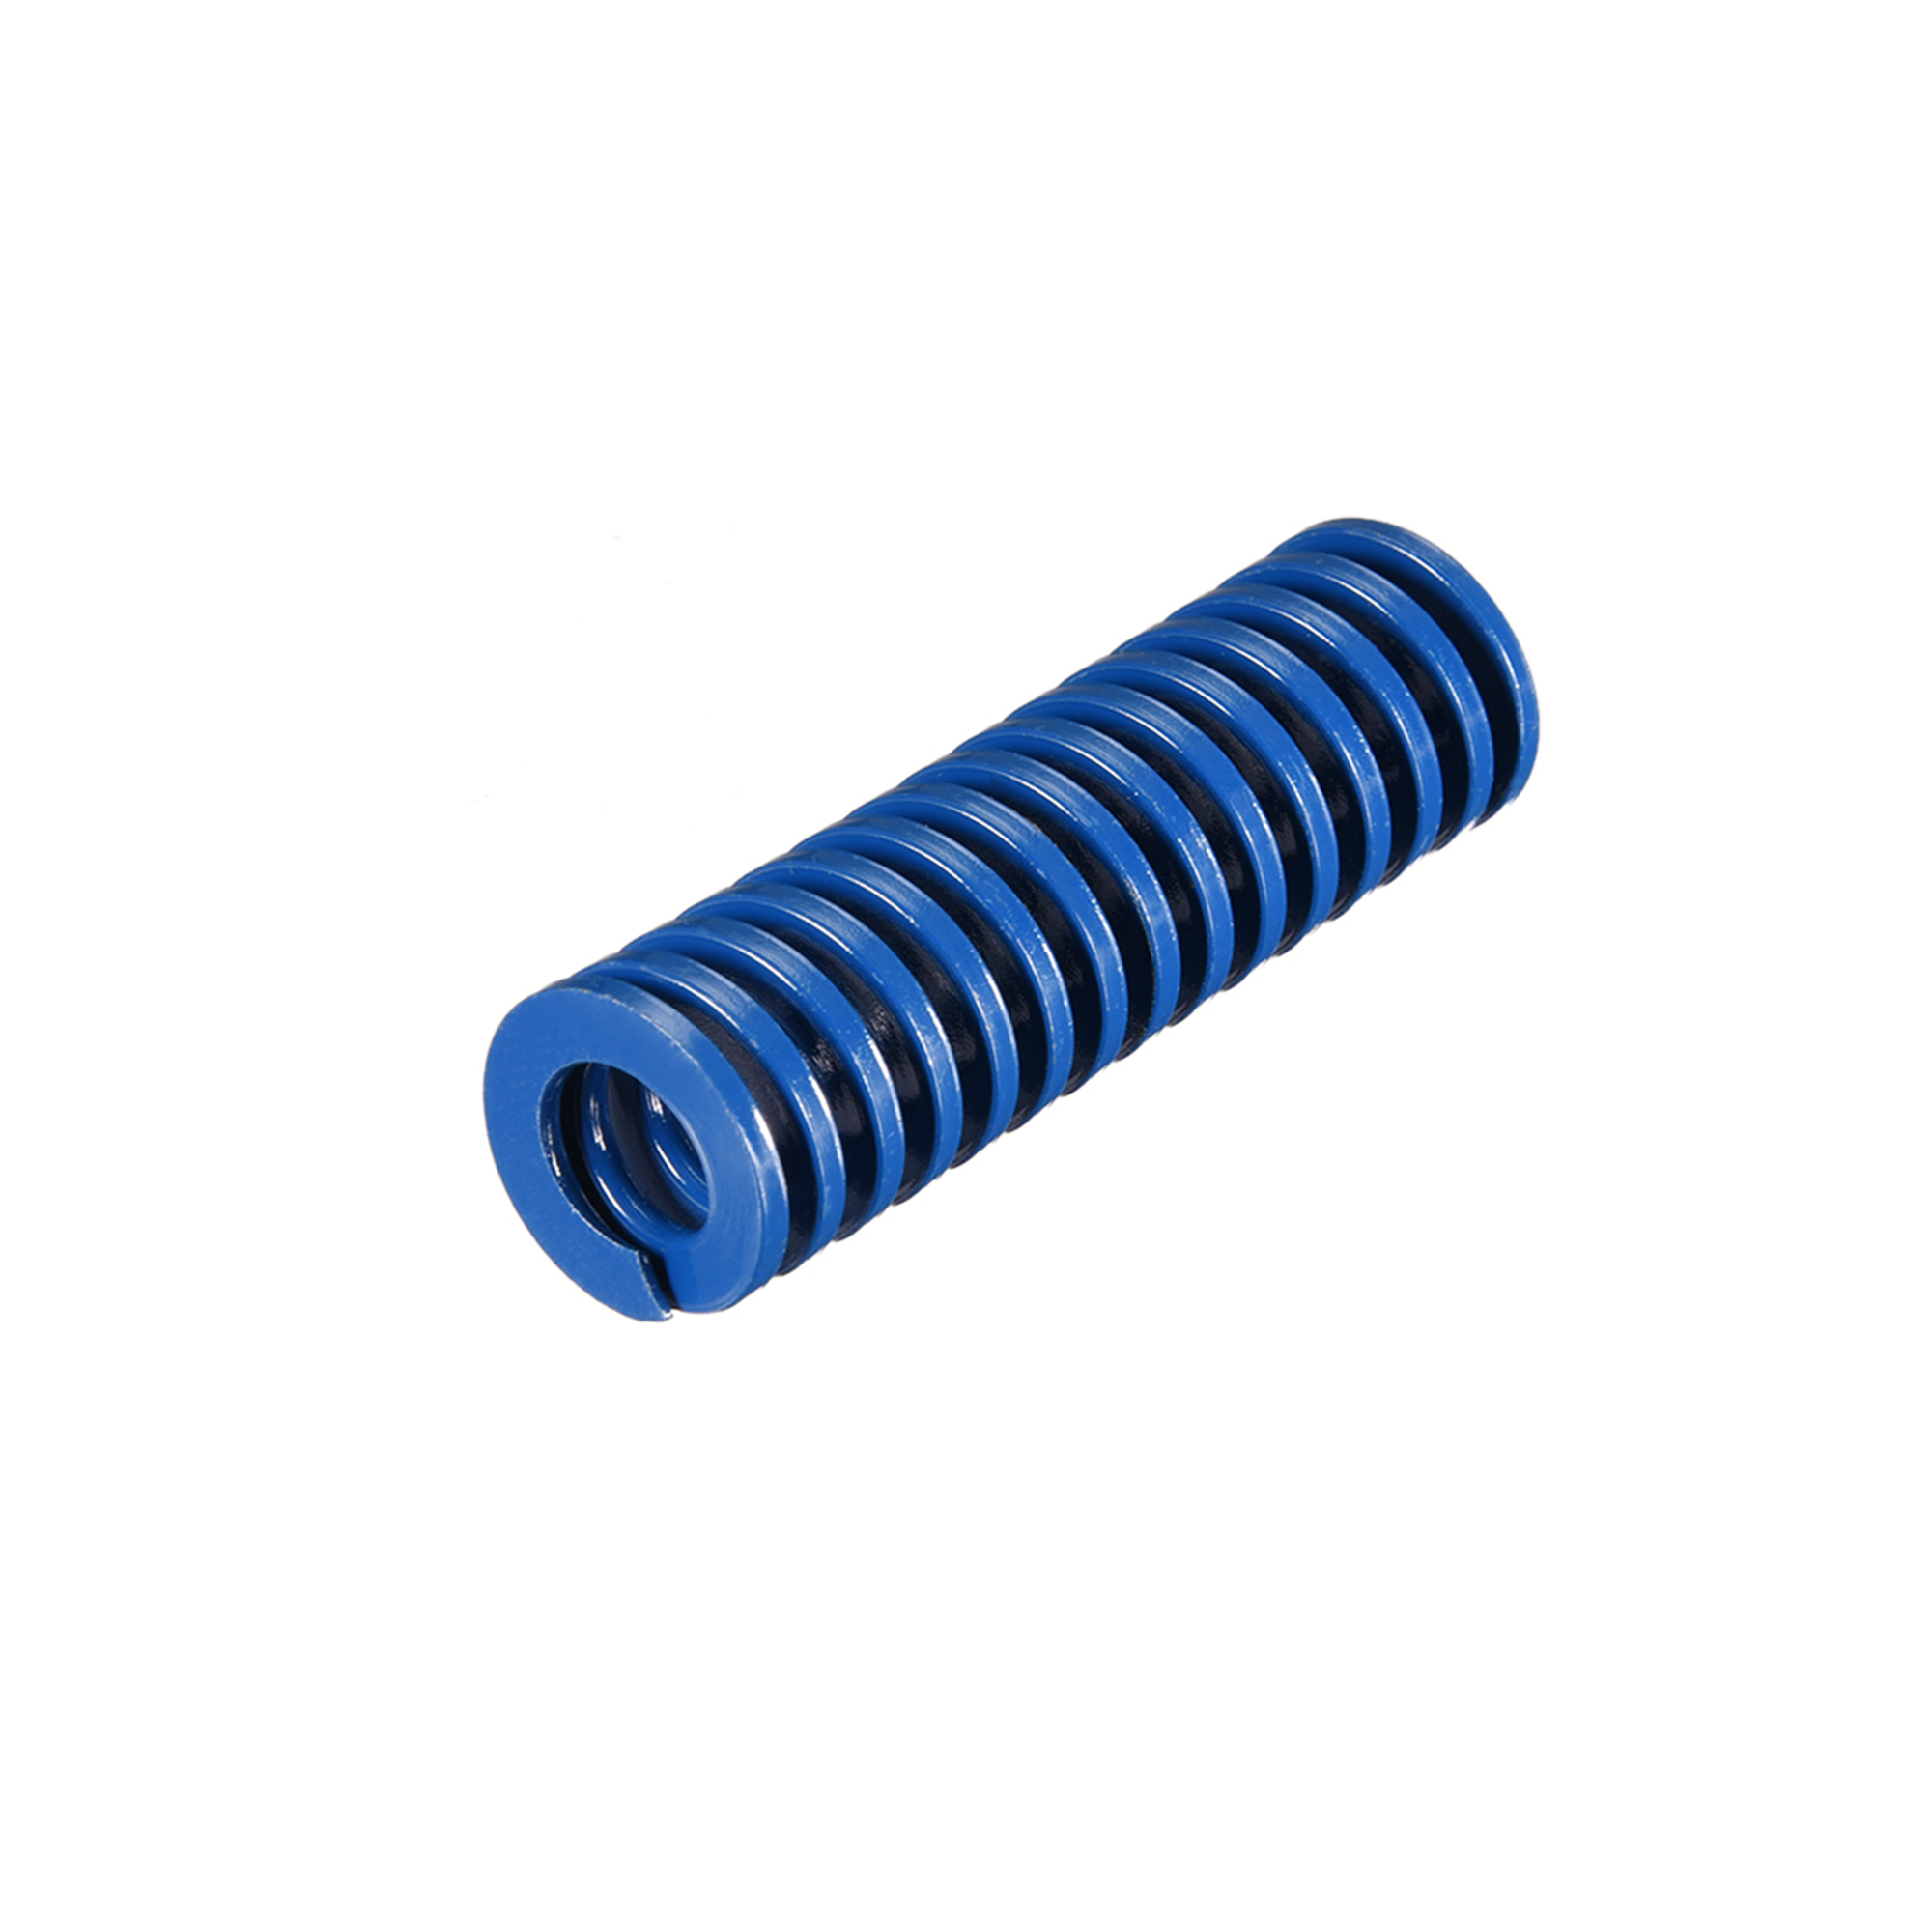 20mm OD 65mm Long Spiral Stamping Light Load Compression Mould Die Spring Blue 1Pcs - image 2 of 2